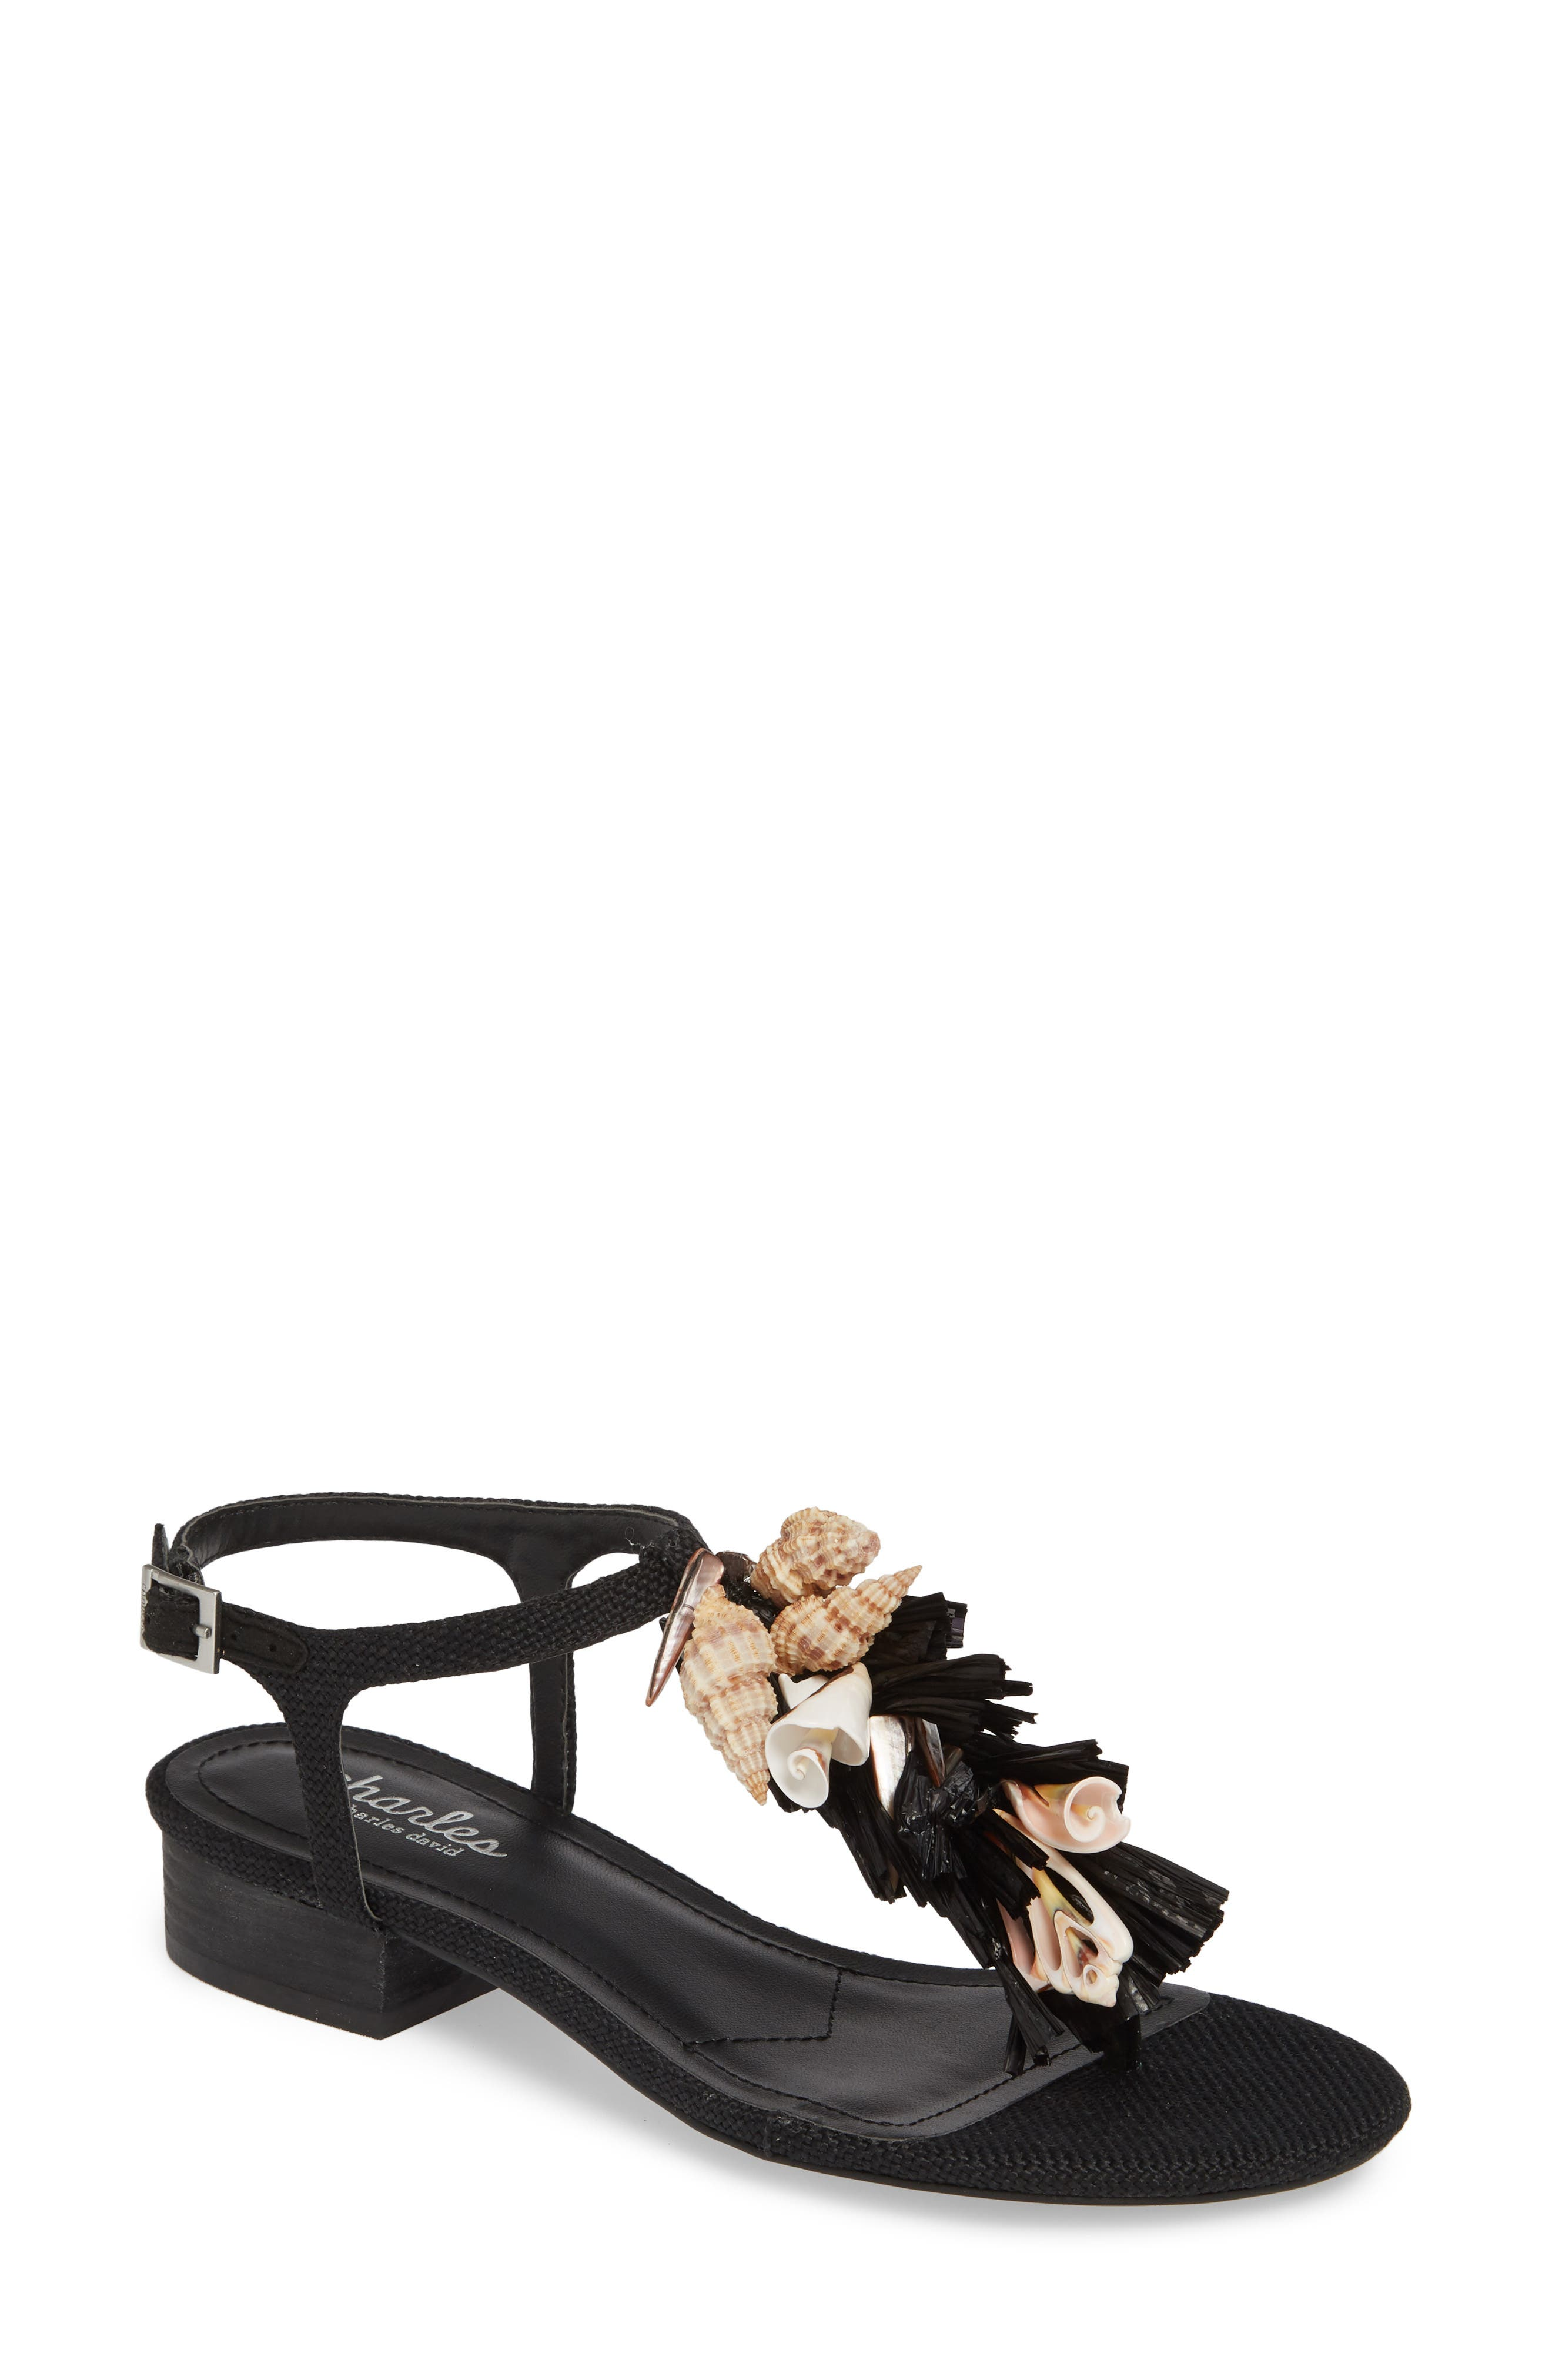 CHARLES BY CHARLES DAVID Seashell Sandal, Main, color, BLACK FABRIC